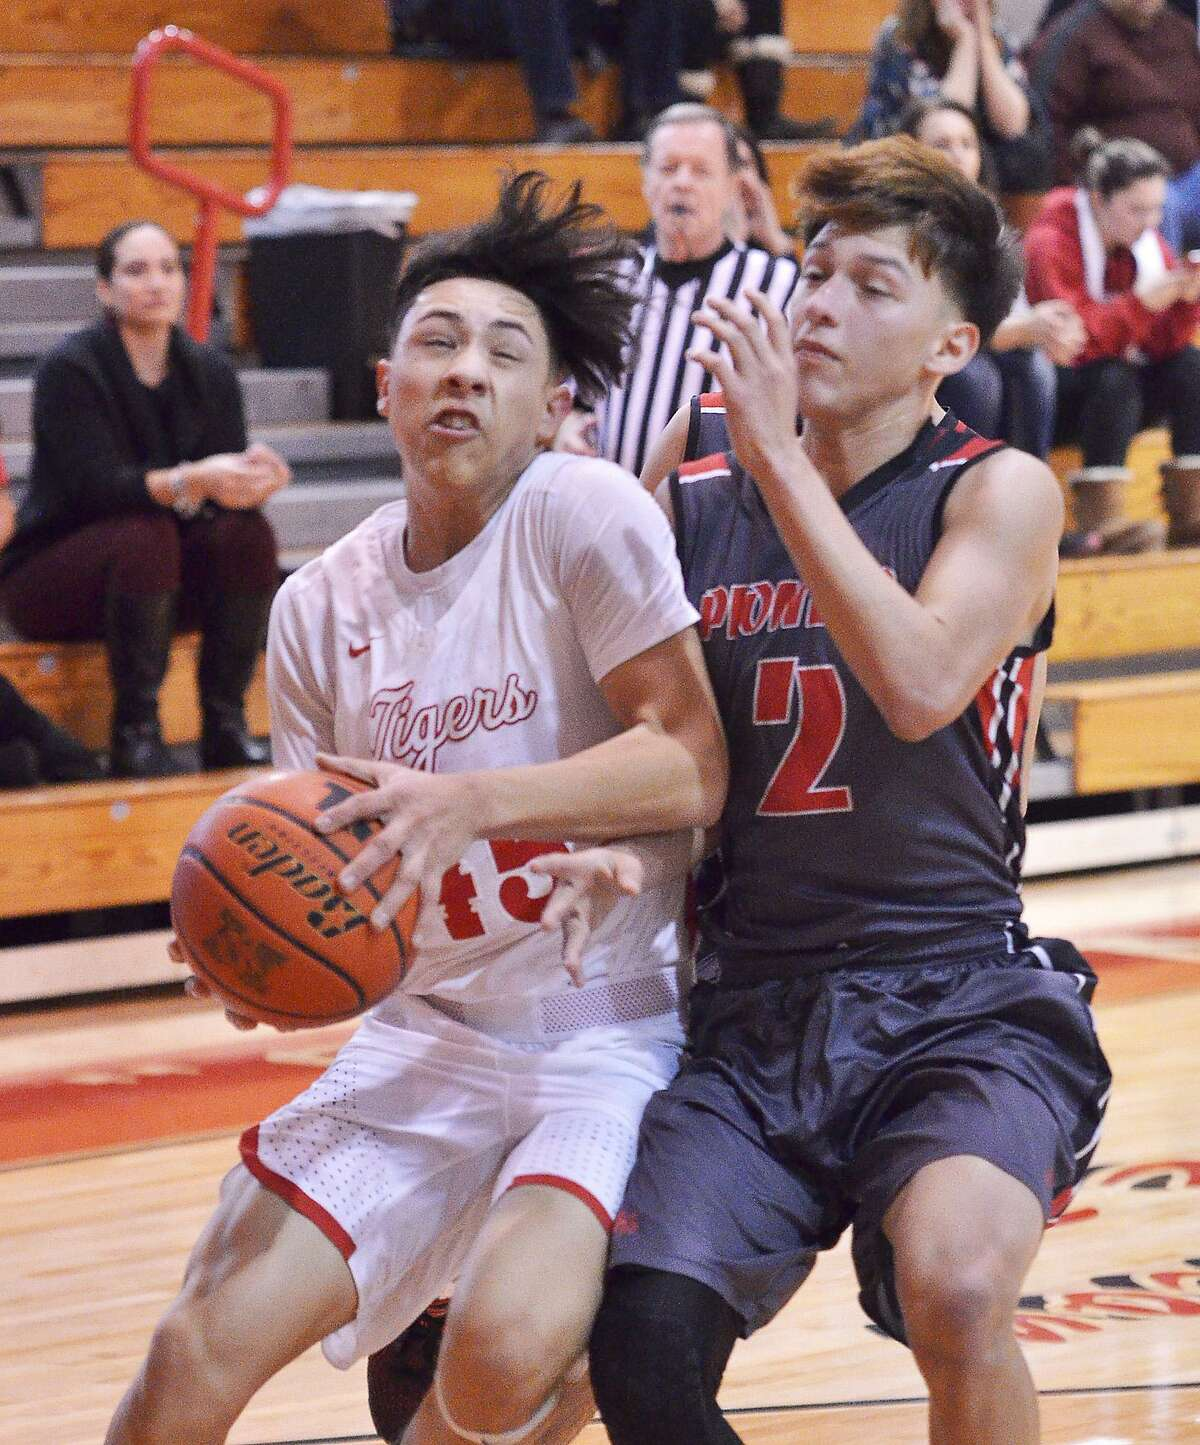 Sophomore Nelson Vasquez paced Martin with 26 points and seven rebounds in a 70-52 win over Sharyland on Thursday.